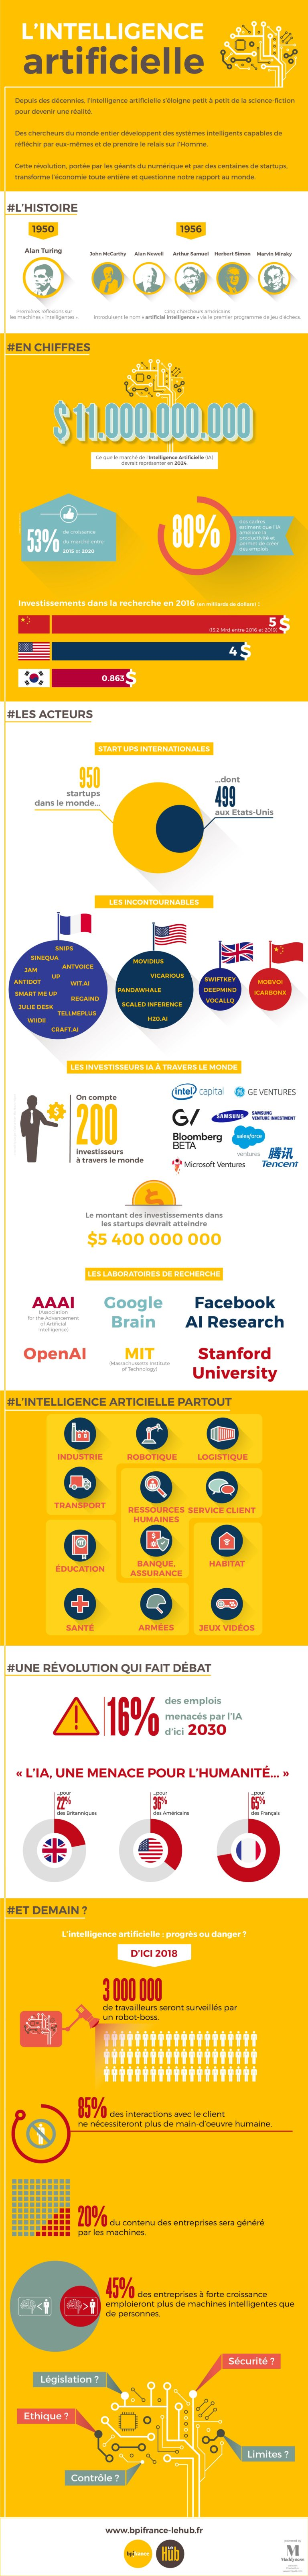 infographie-intelligence-artificielle